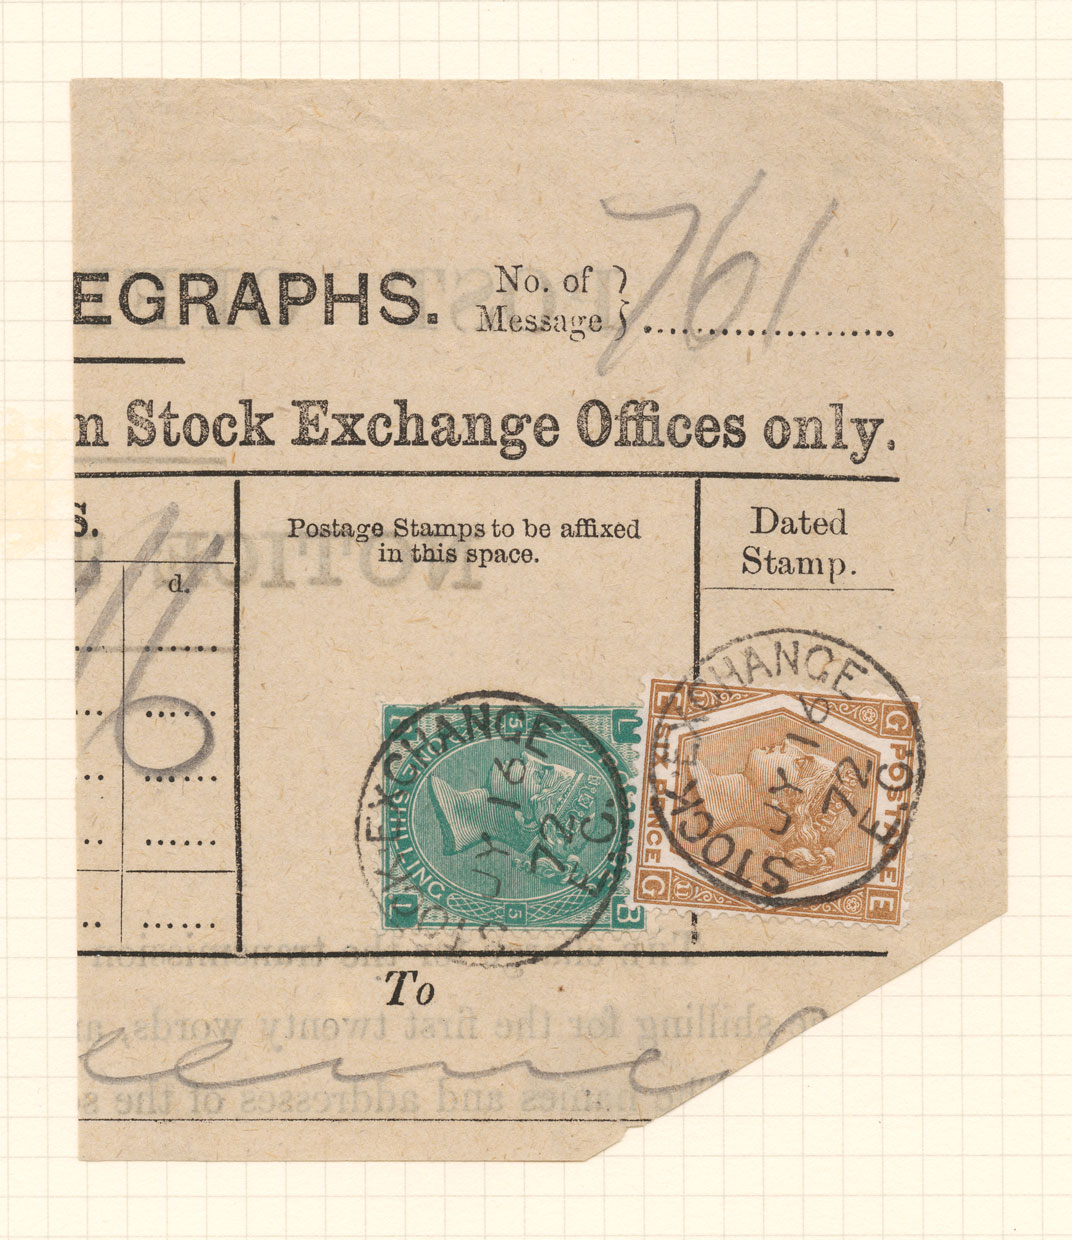 A telegram with a fake green one shilling stamp and a genuine six pence stamp affixed.